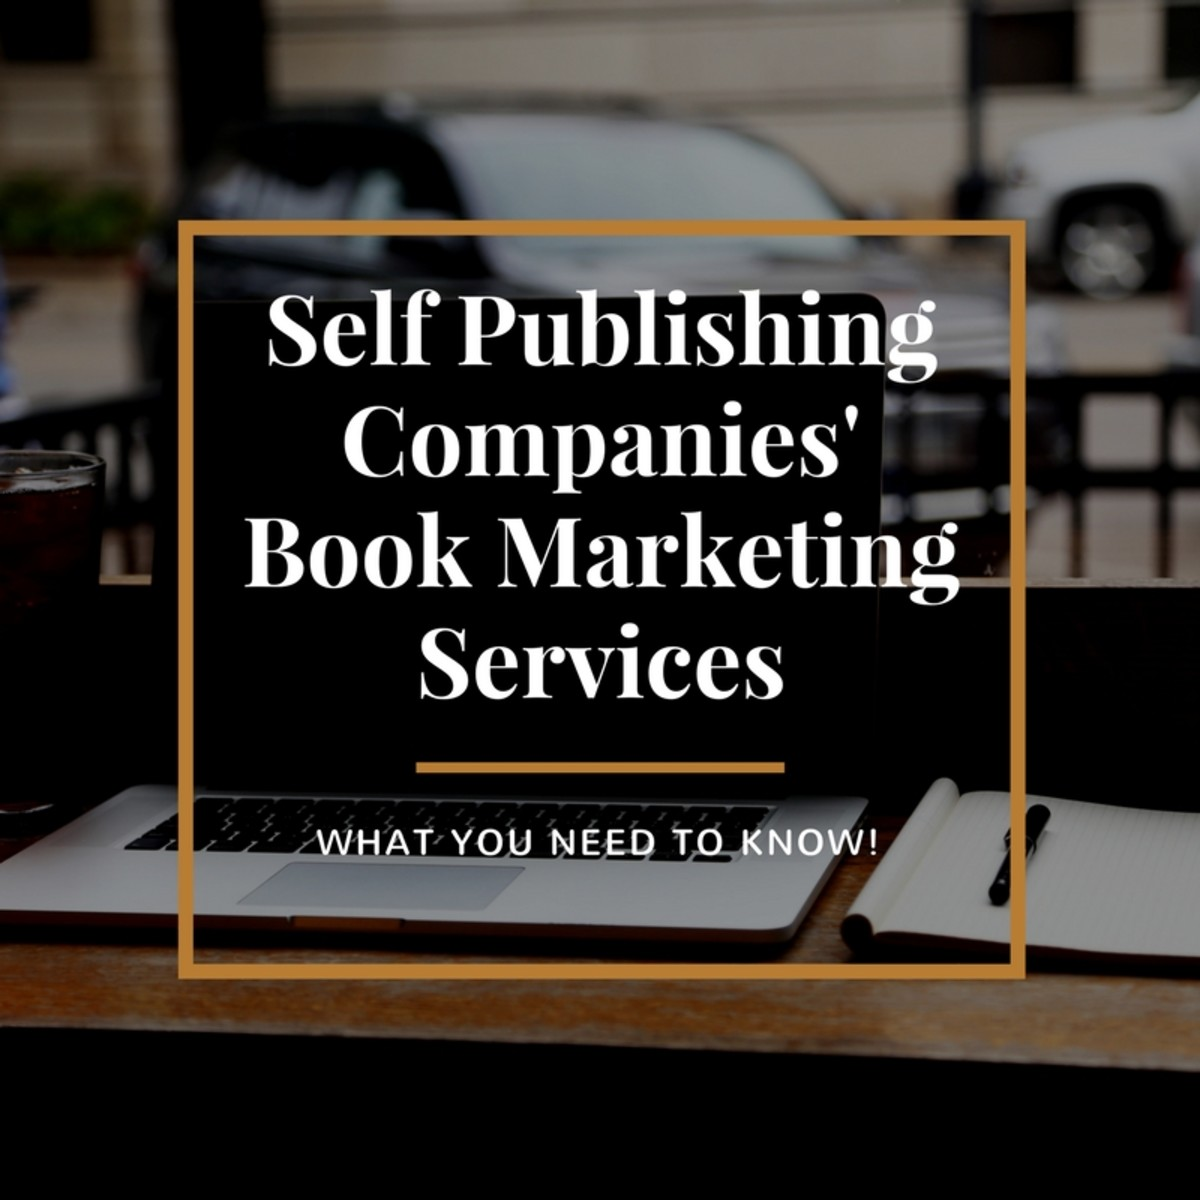 Self-Publishing Companies' Book Marketing Services: What You Need to Know